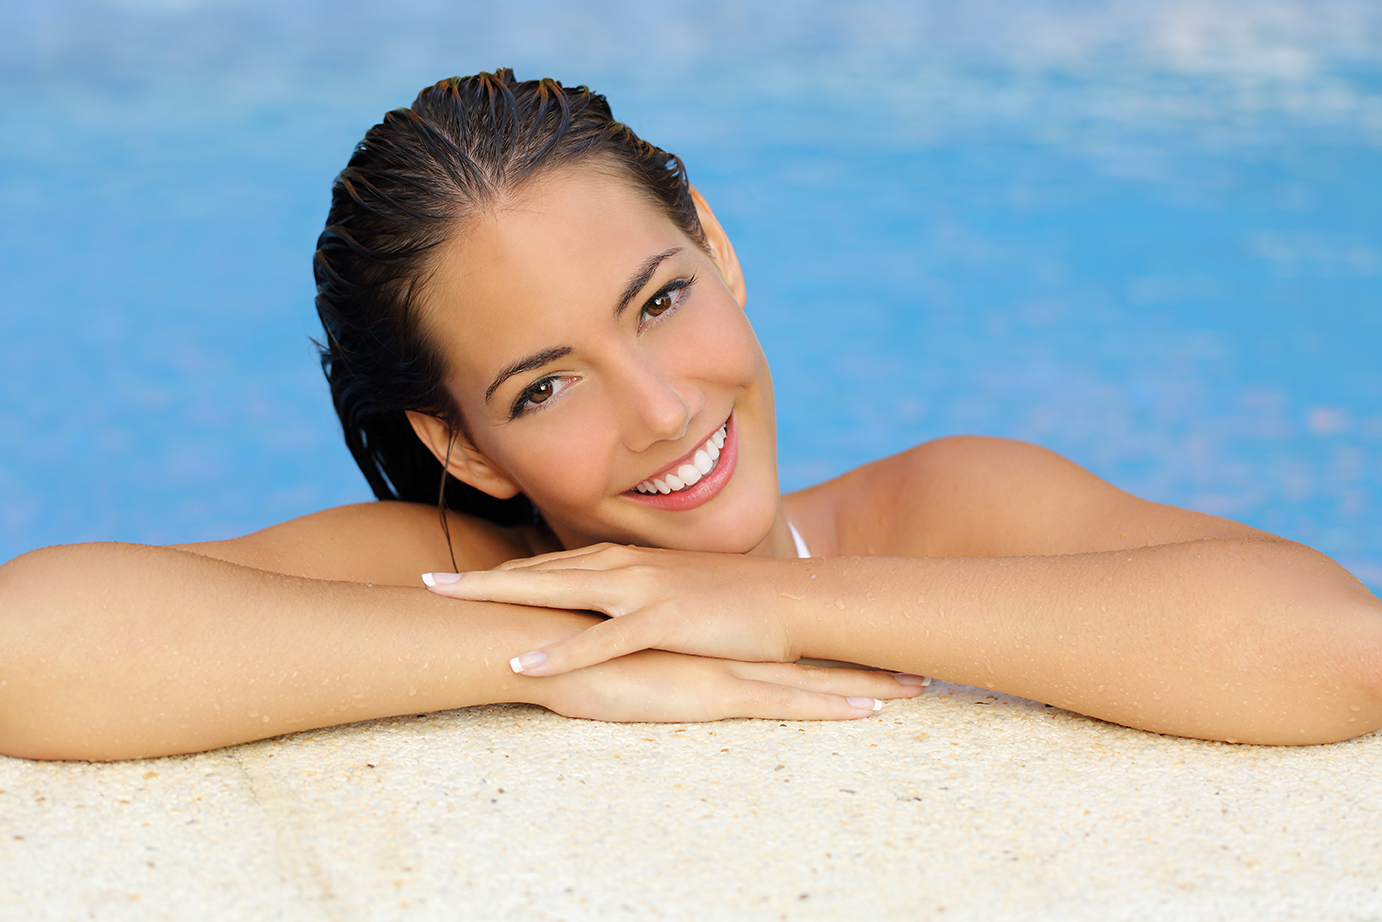 Woman in pool smiling.